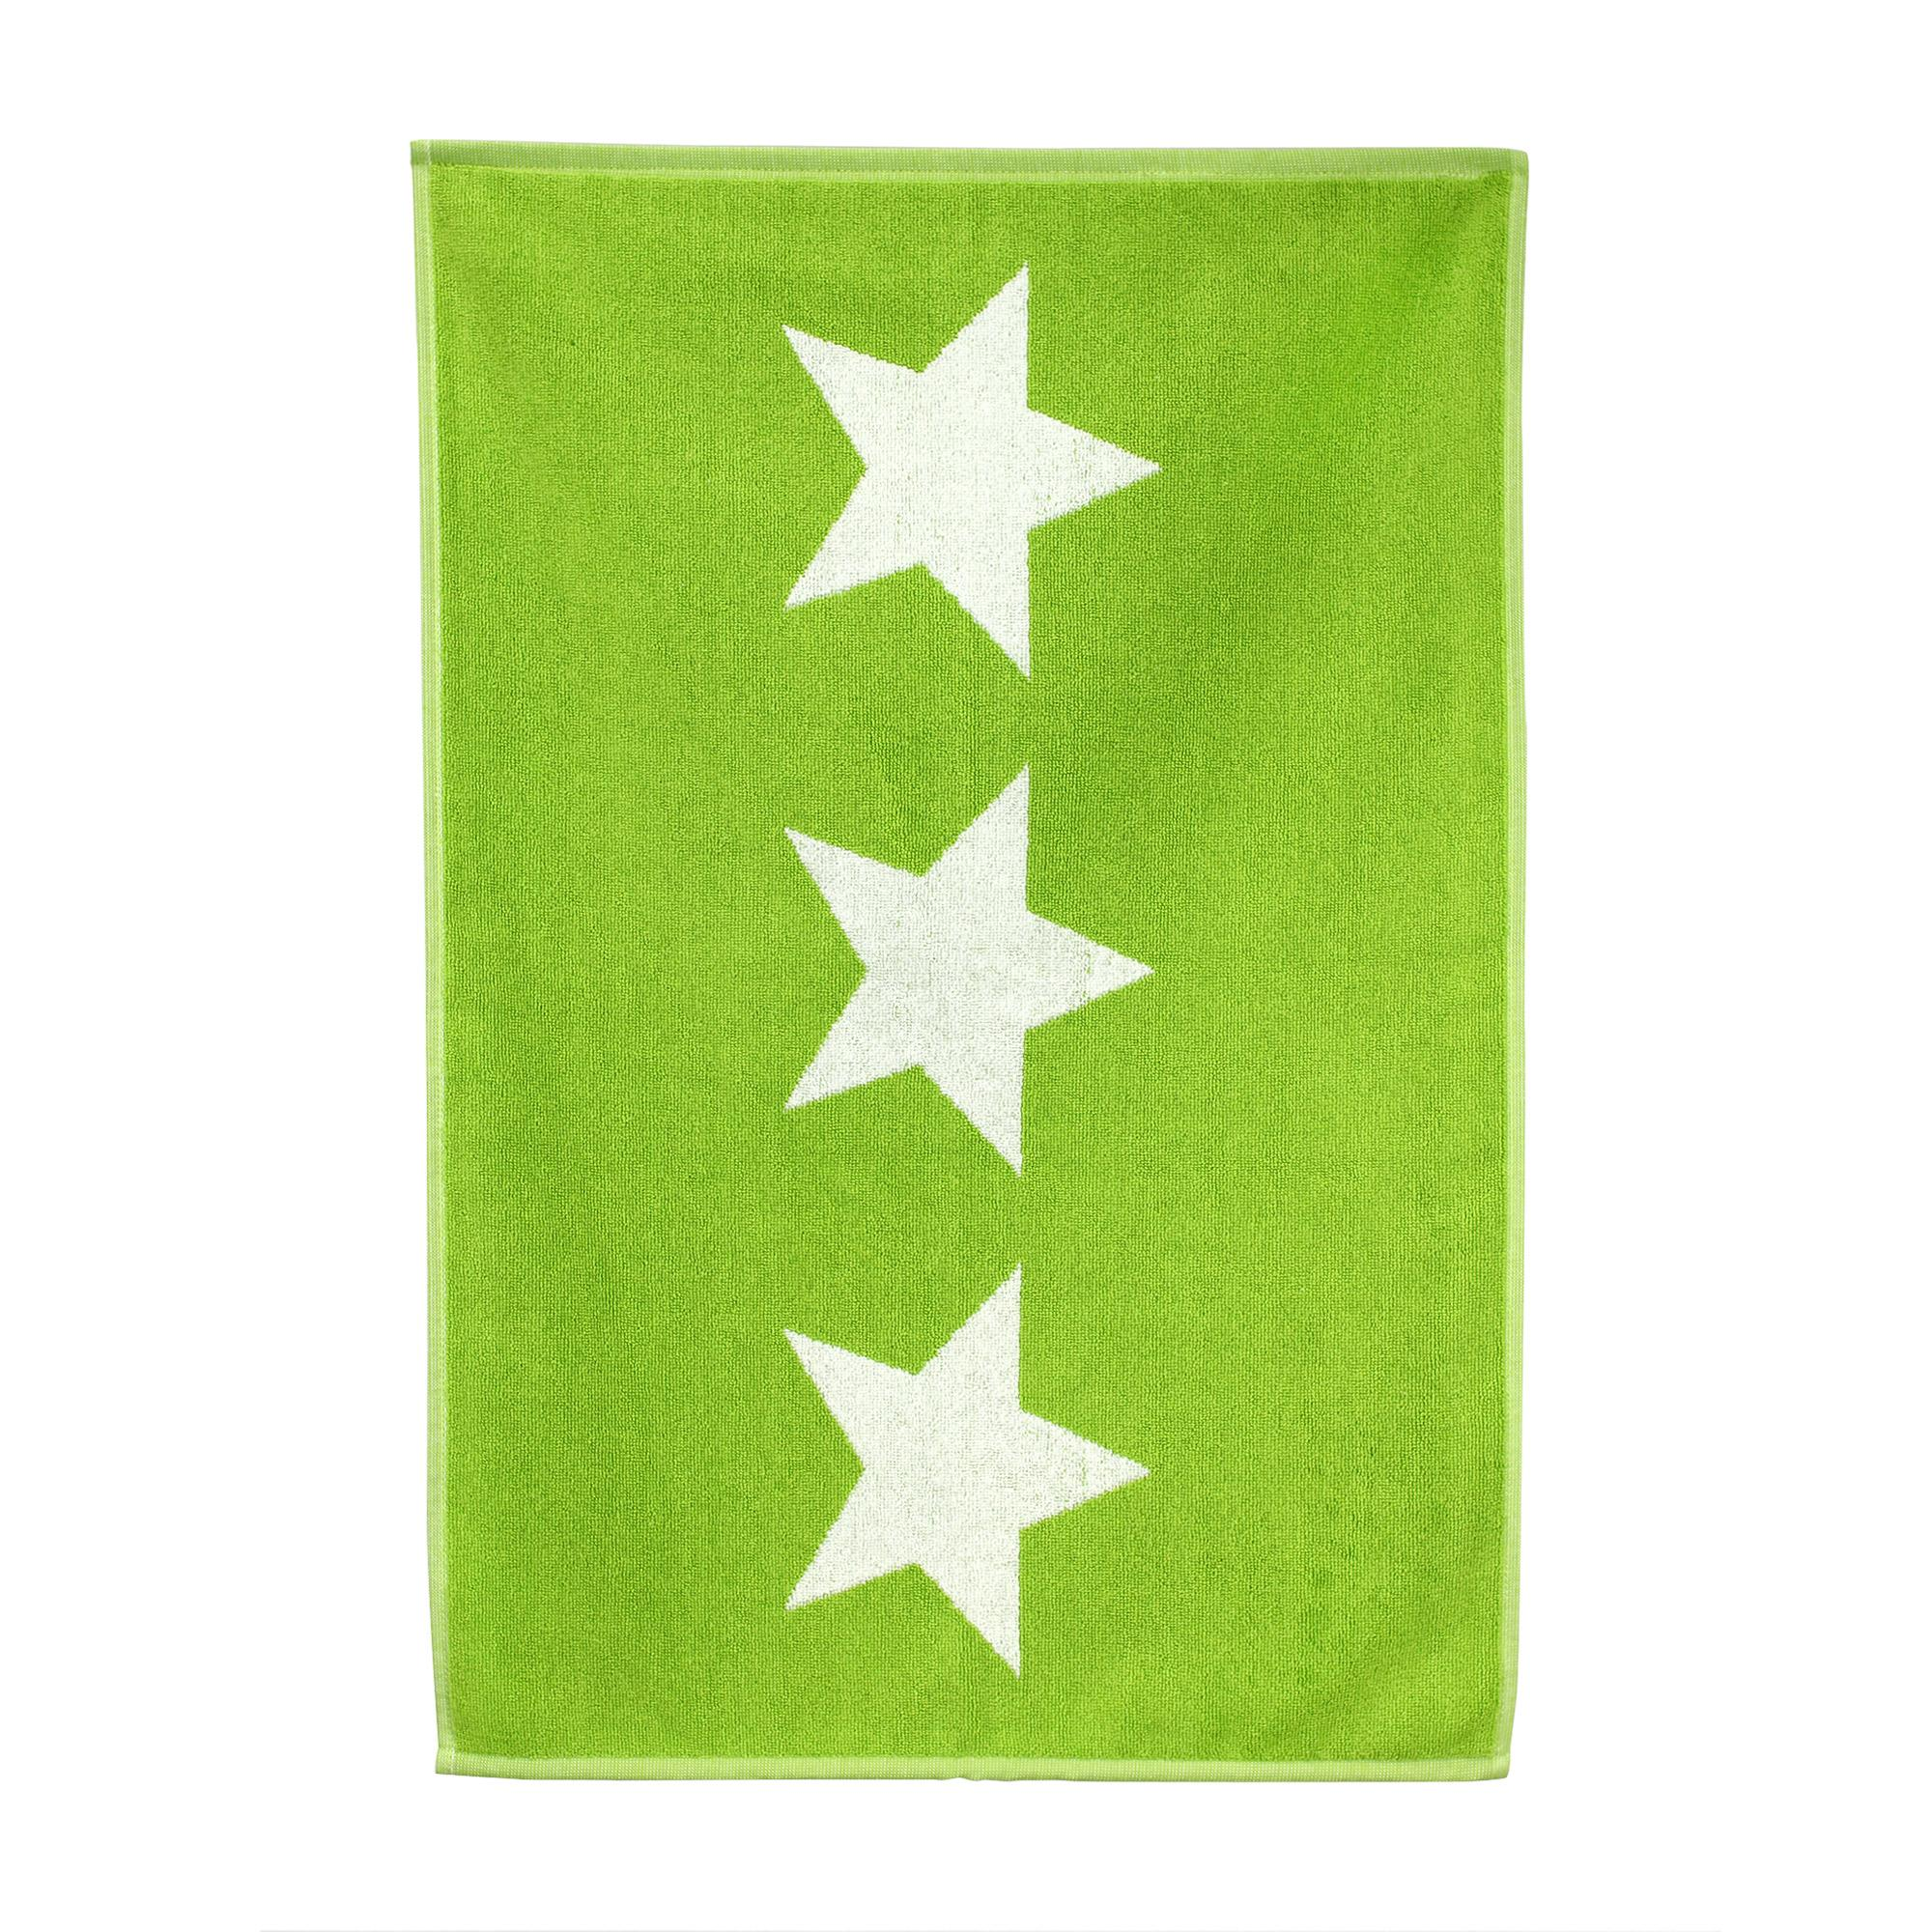 tapis de bain 50x70 cm 100 coton 700 g m2 stars vert ebay. Black Bedroom Furniture Sets. Home Design Ideas